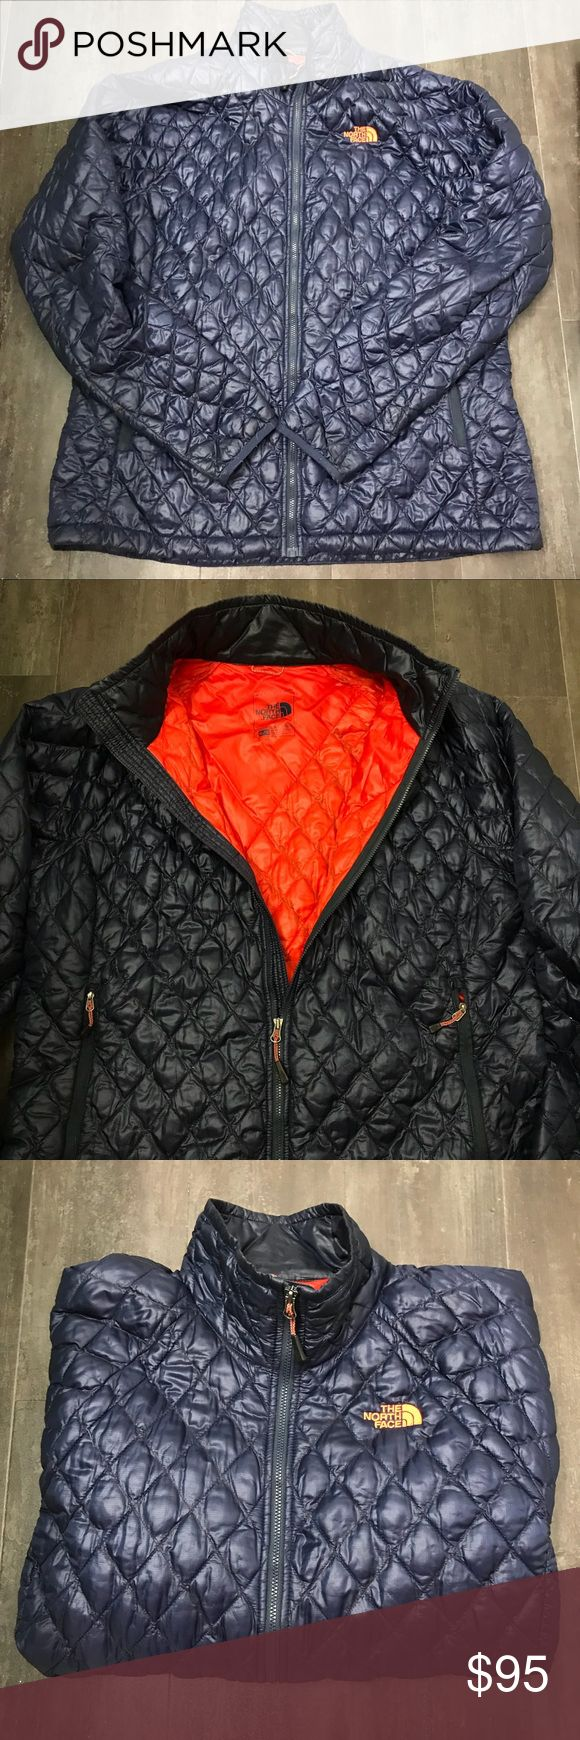 The North Face Thermoball Jacket Navy The North Face Jacket  Only worn a few times  Navy with orange inside Drawstring Waist The North Face Jackets & Coats